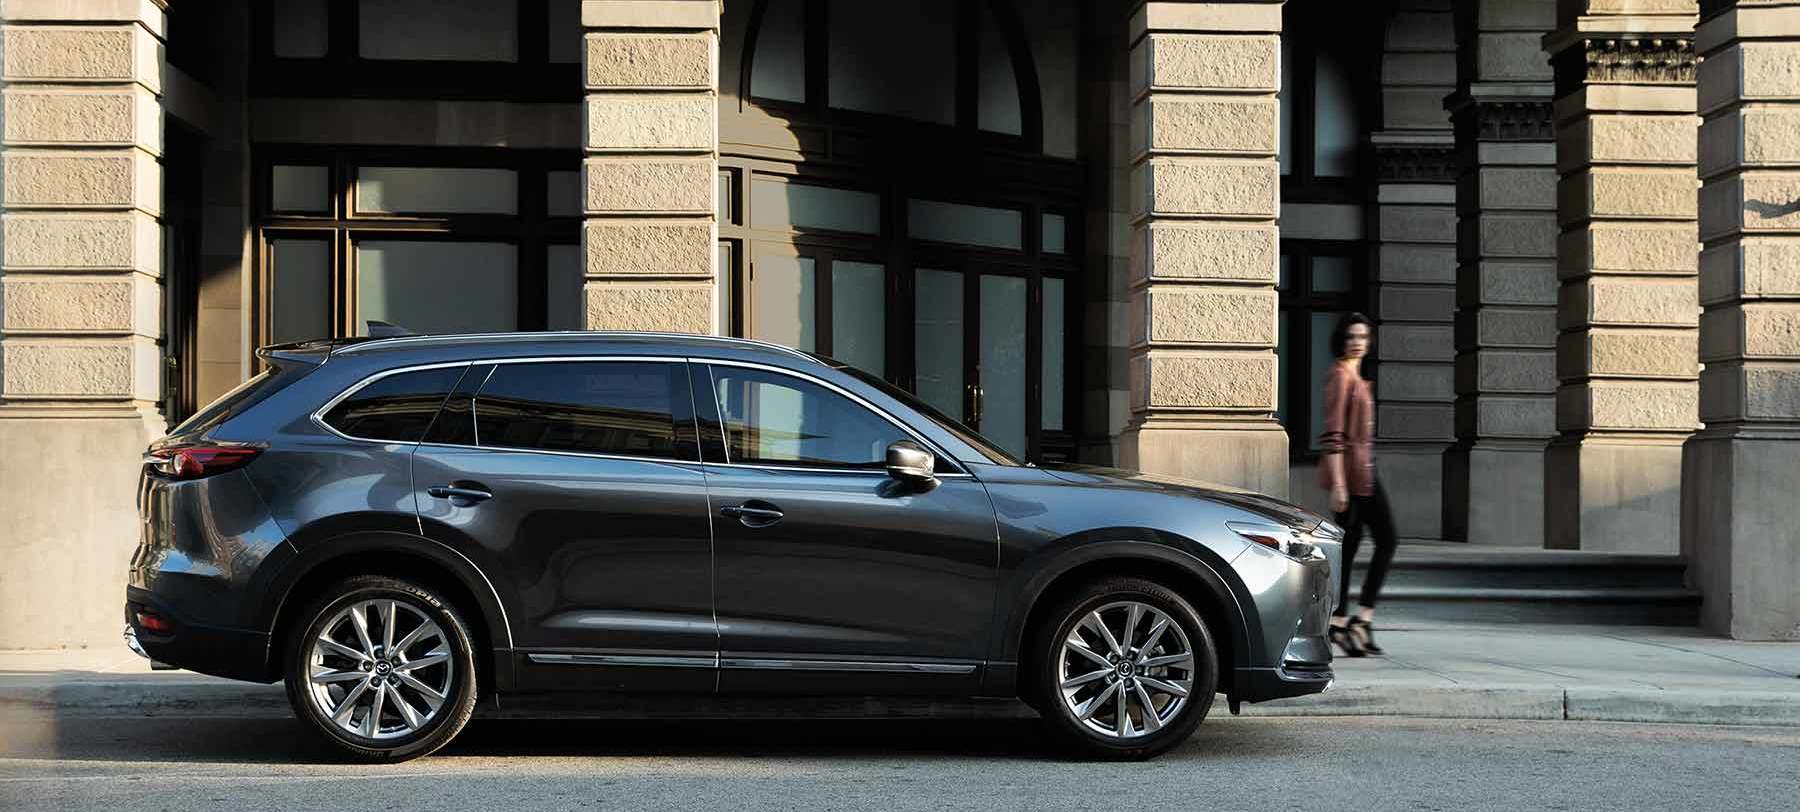 2019 Mazda CX-9 for Sale near Novi, MI